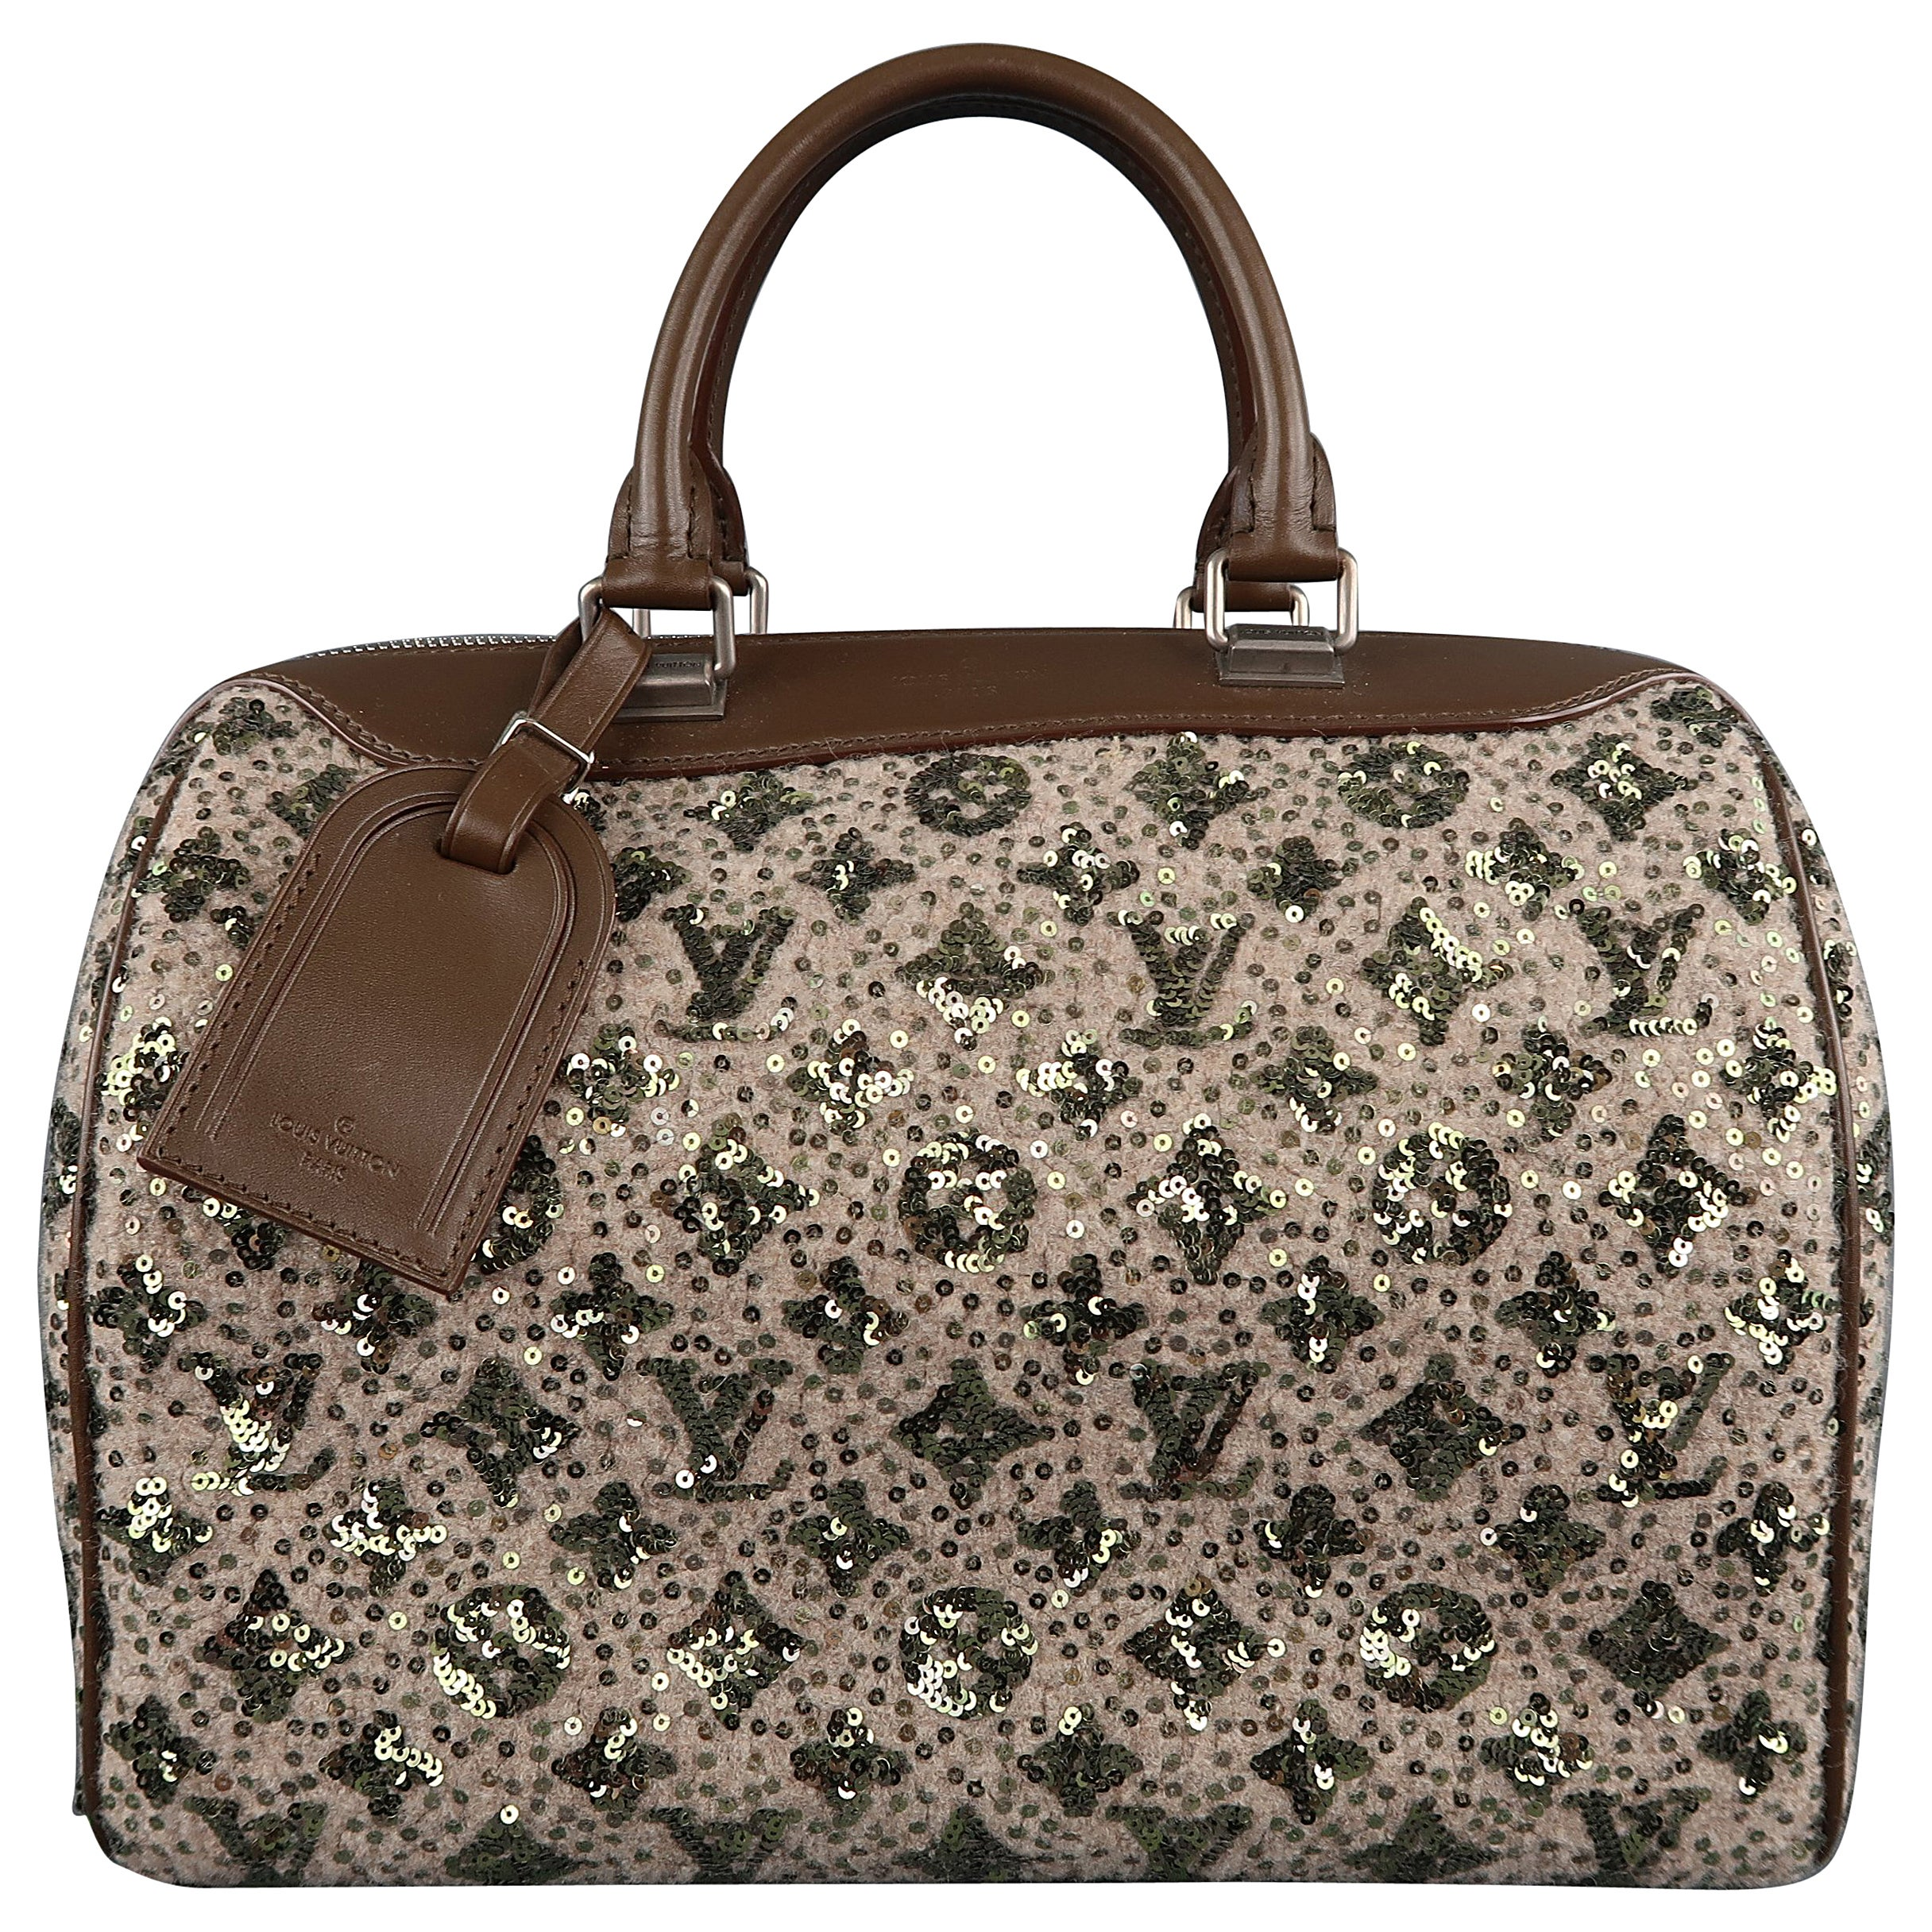 0a4091ced943 LOUIS VUITTON Sequin Monogram Sunshine Express Speedy Wooly Bag at 1stdibs